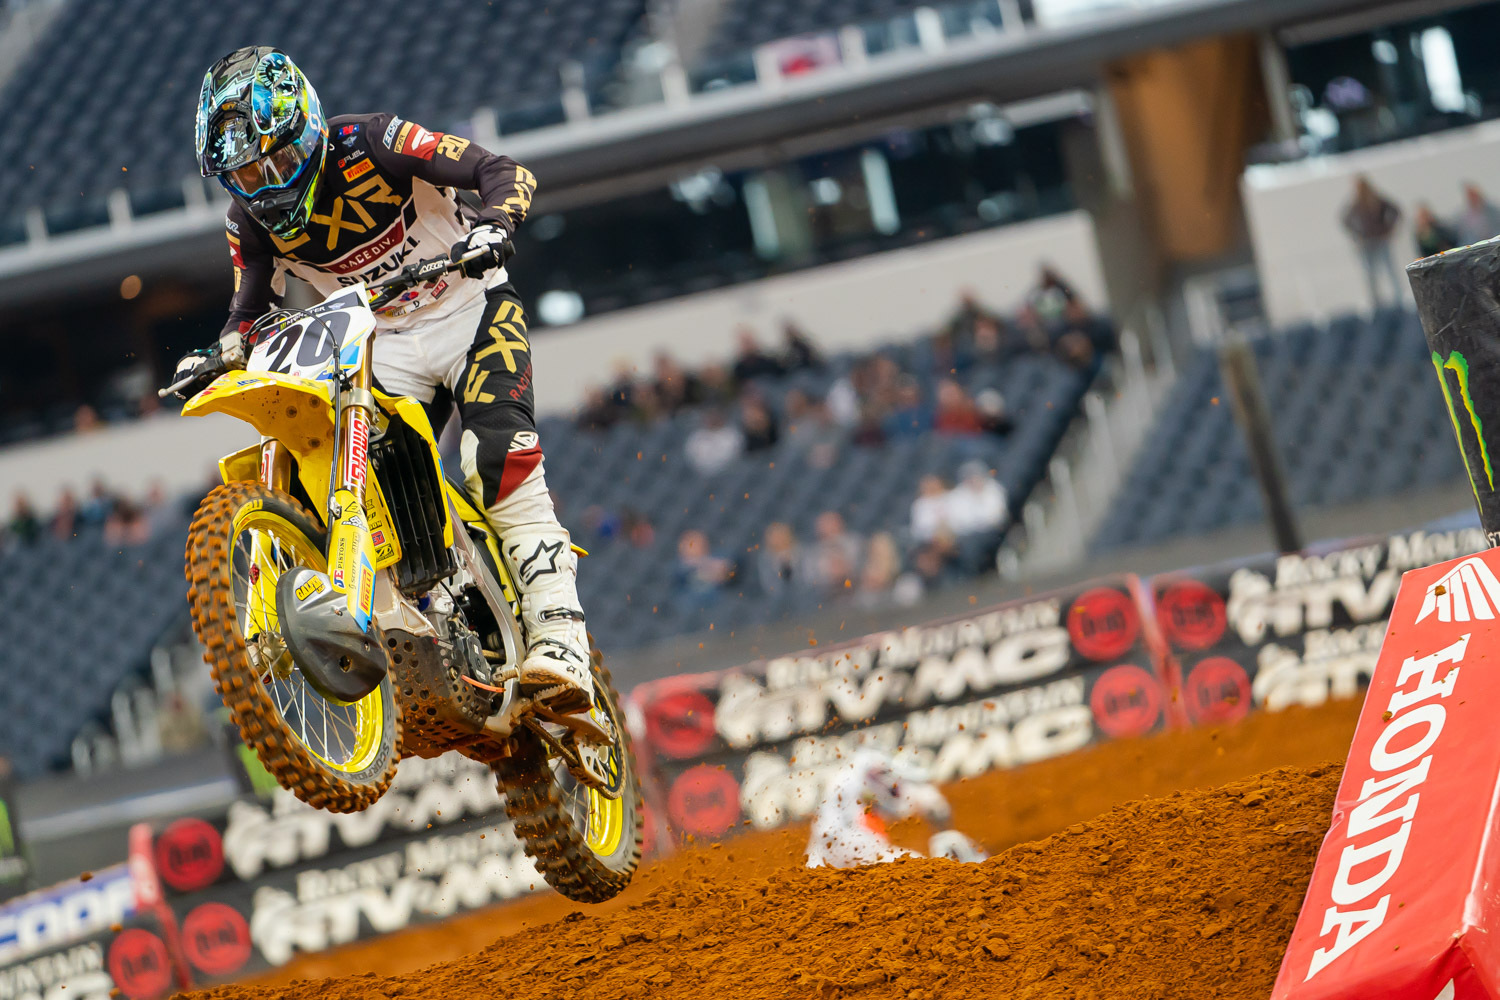 2020-ARLINGTON-SUPERCROSS_KICKSTART_0037